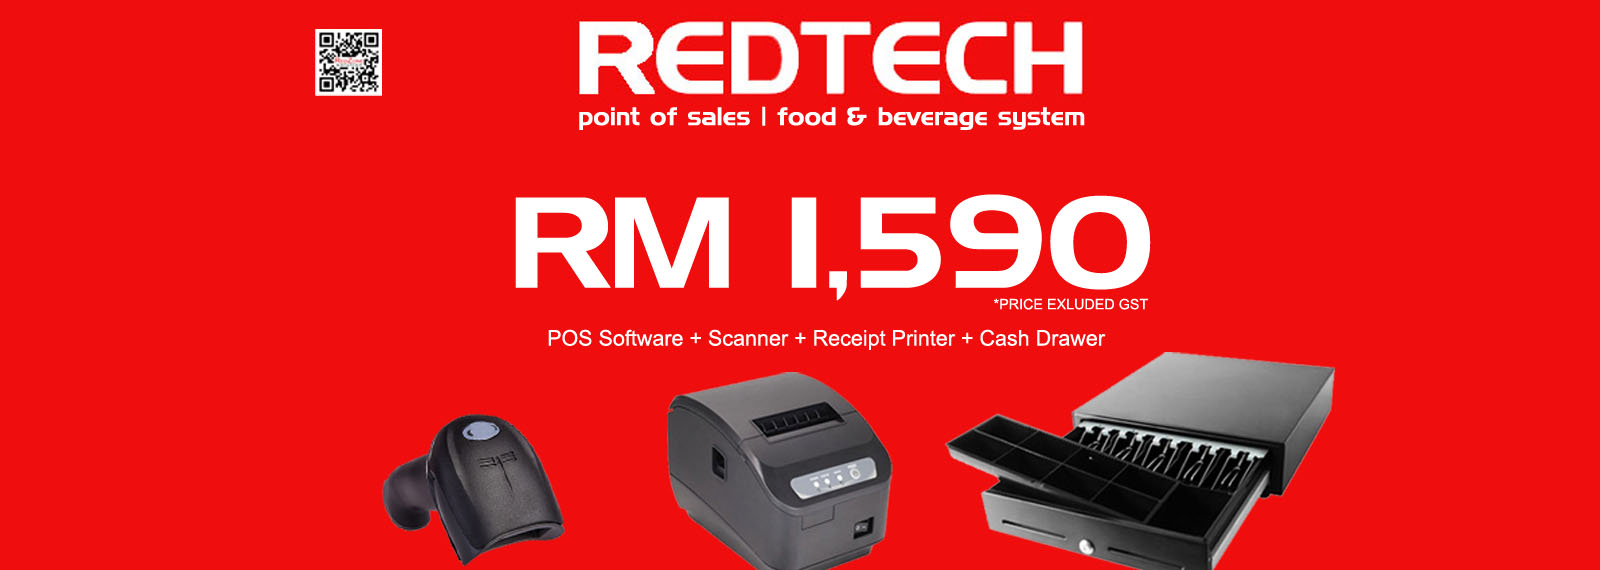 RedTech POS Package